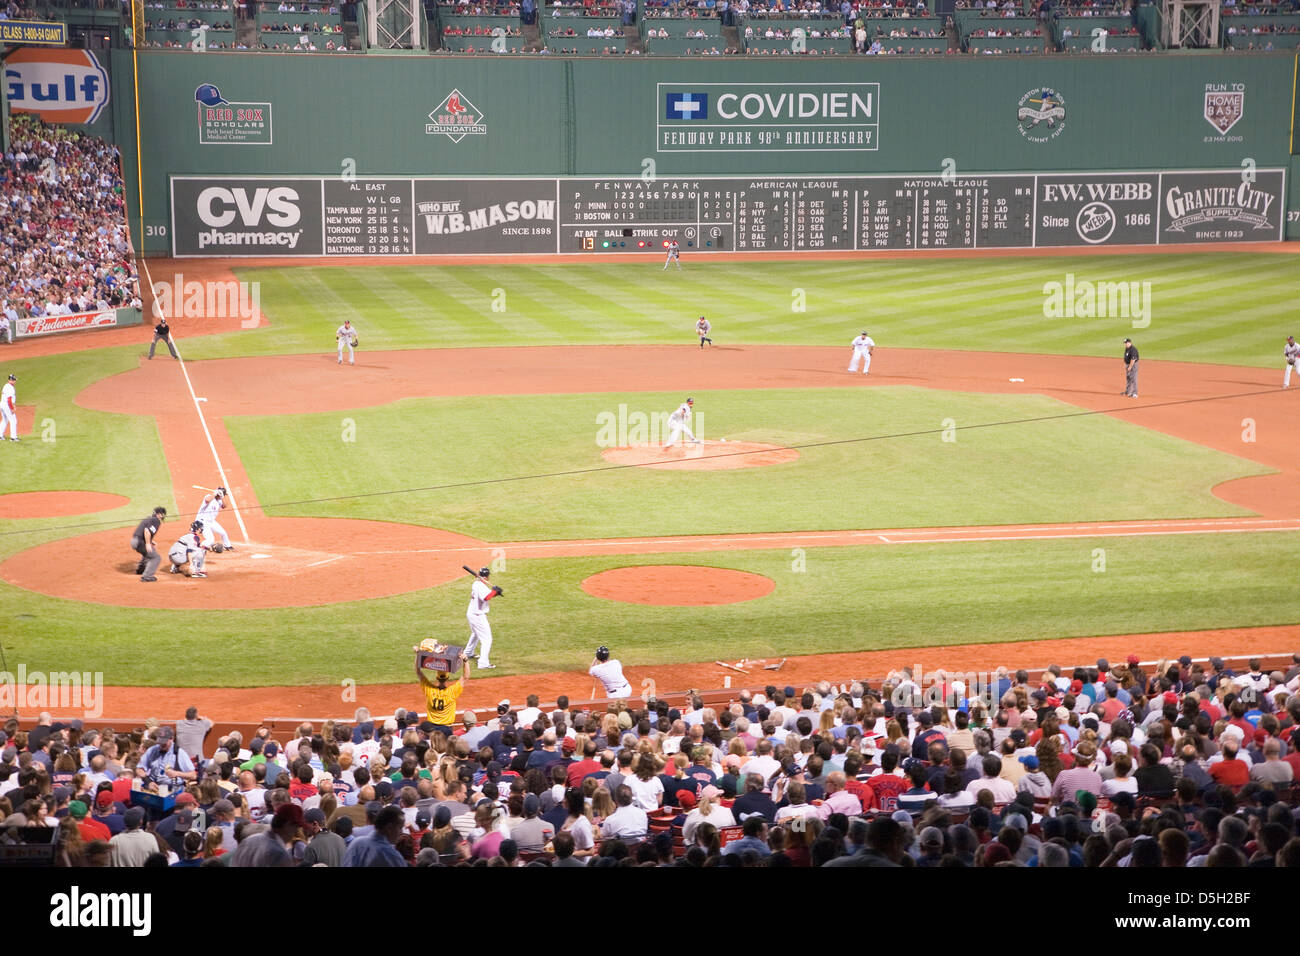 Amazing Fenway Park Wall Art Picture Collection - Wall Art ...